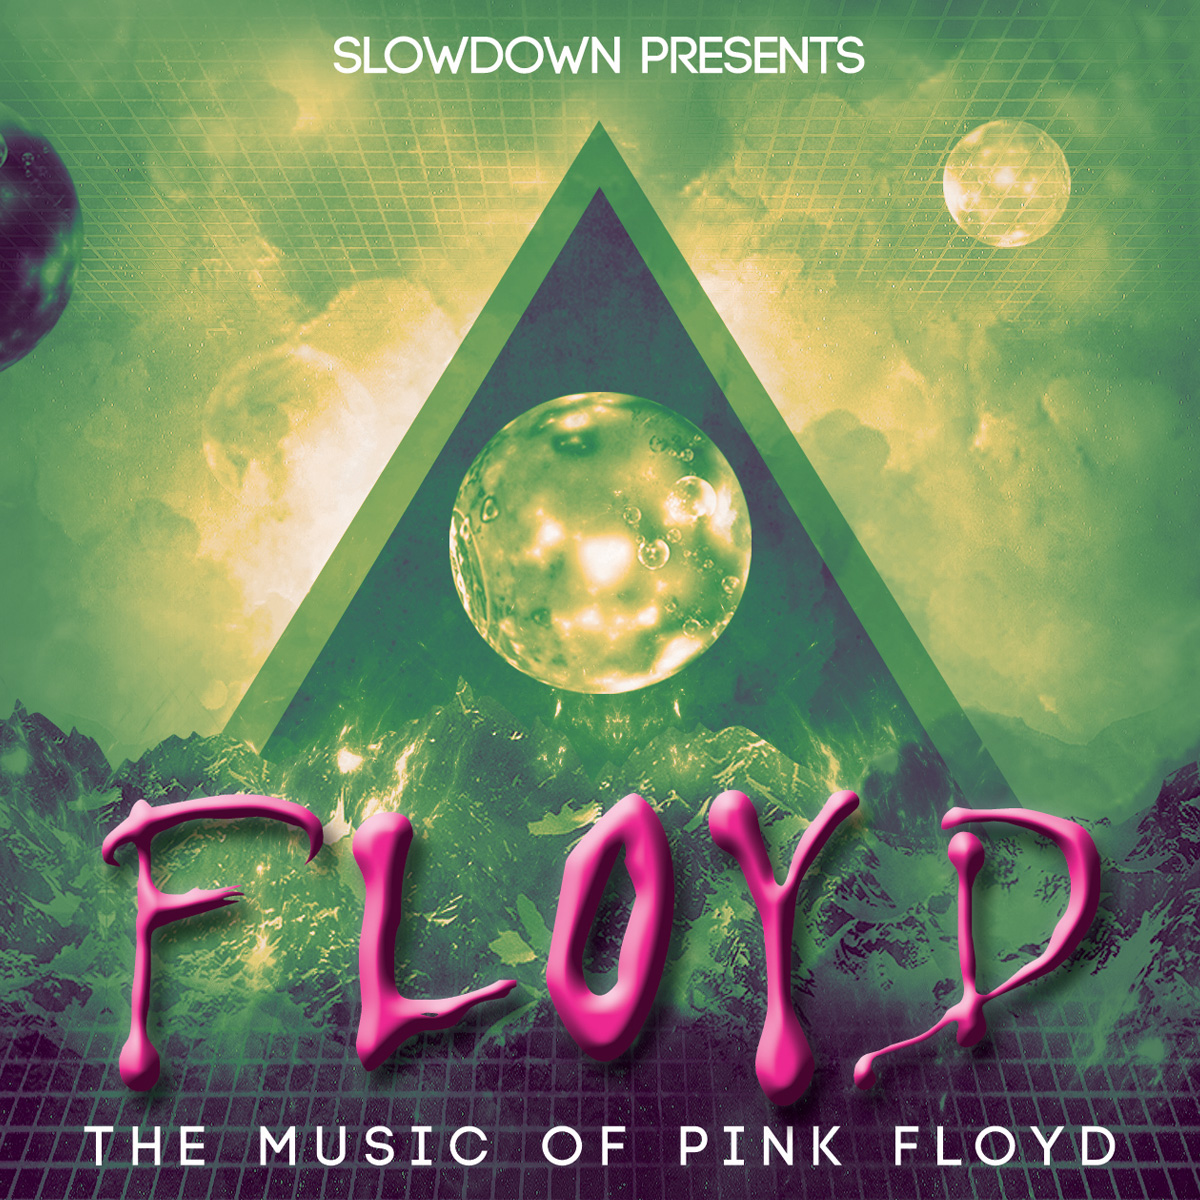 Floyd: A Tribute To Pink Floyd: Main Image